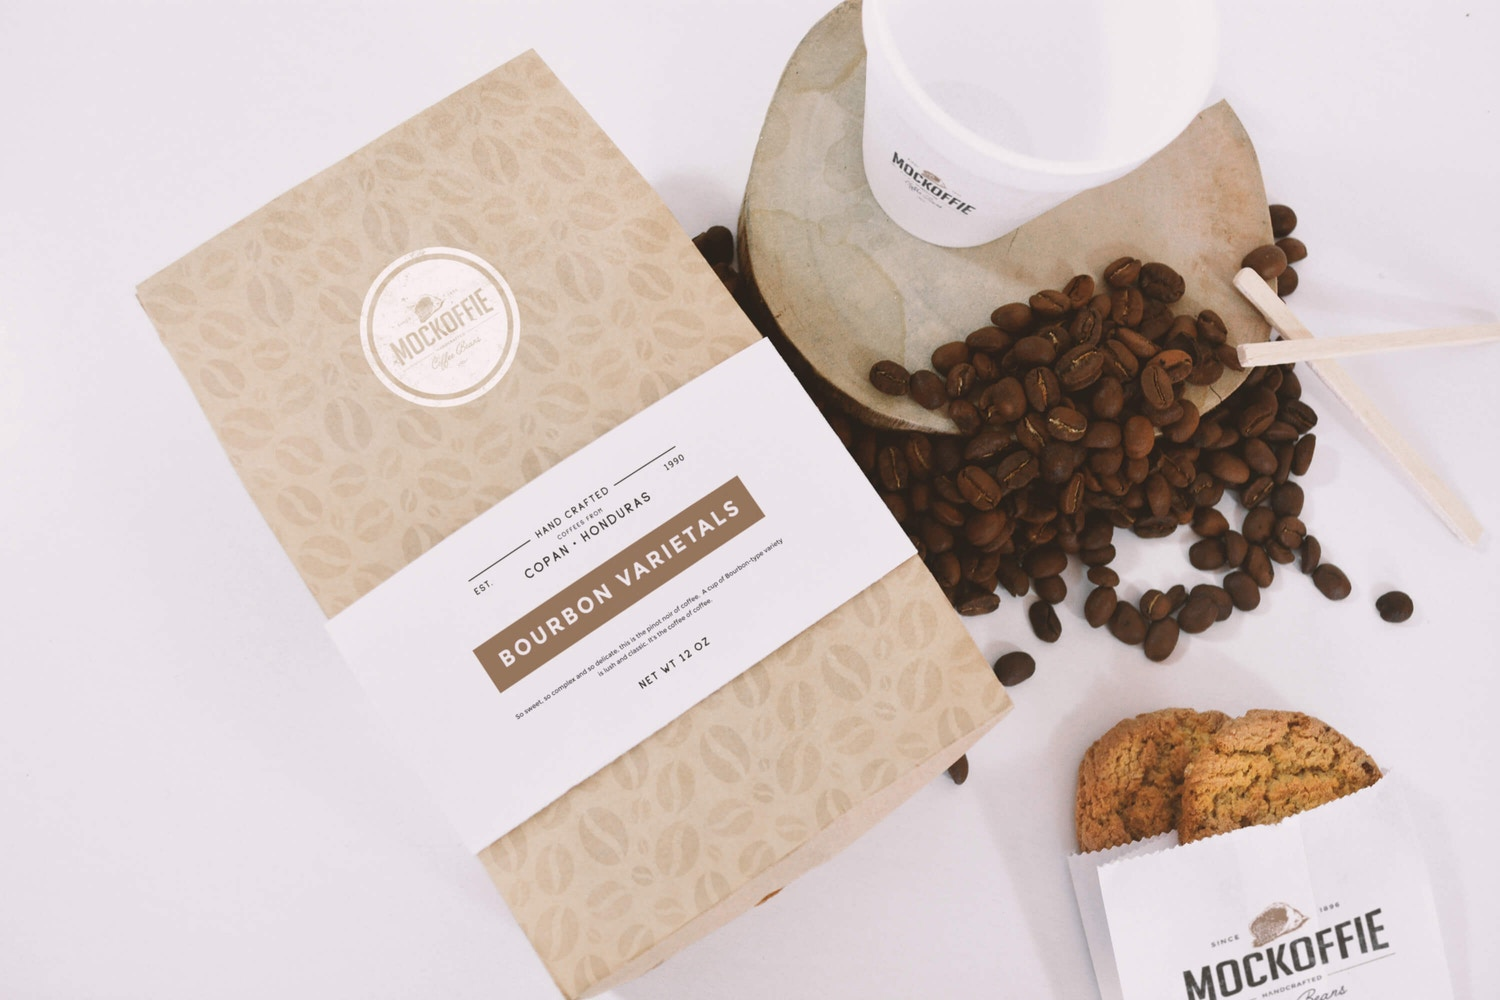 Coffee Bag and Cup Mockup Top View (1) por Eduardo Mejia en Original Mockups